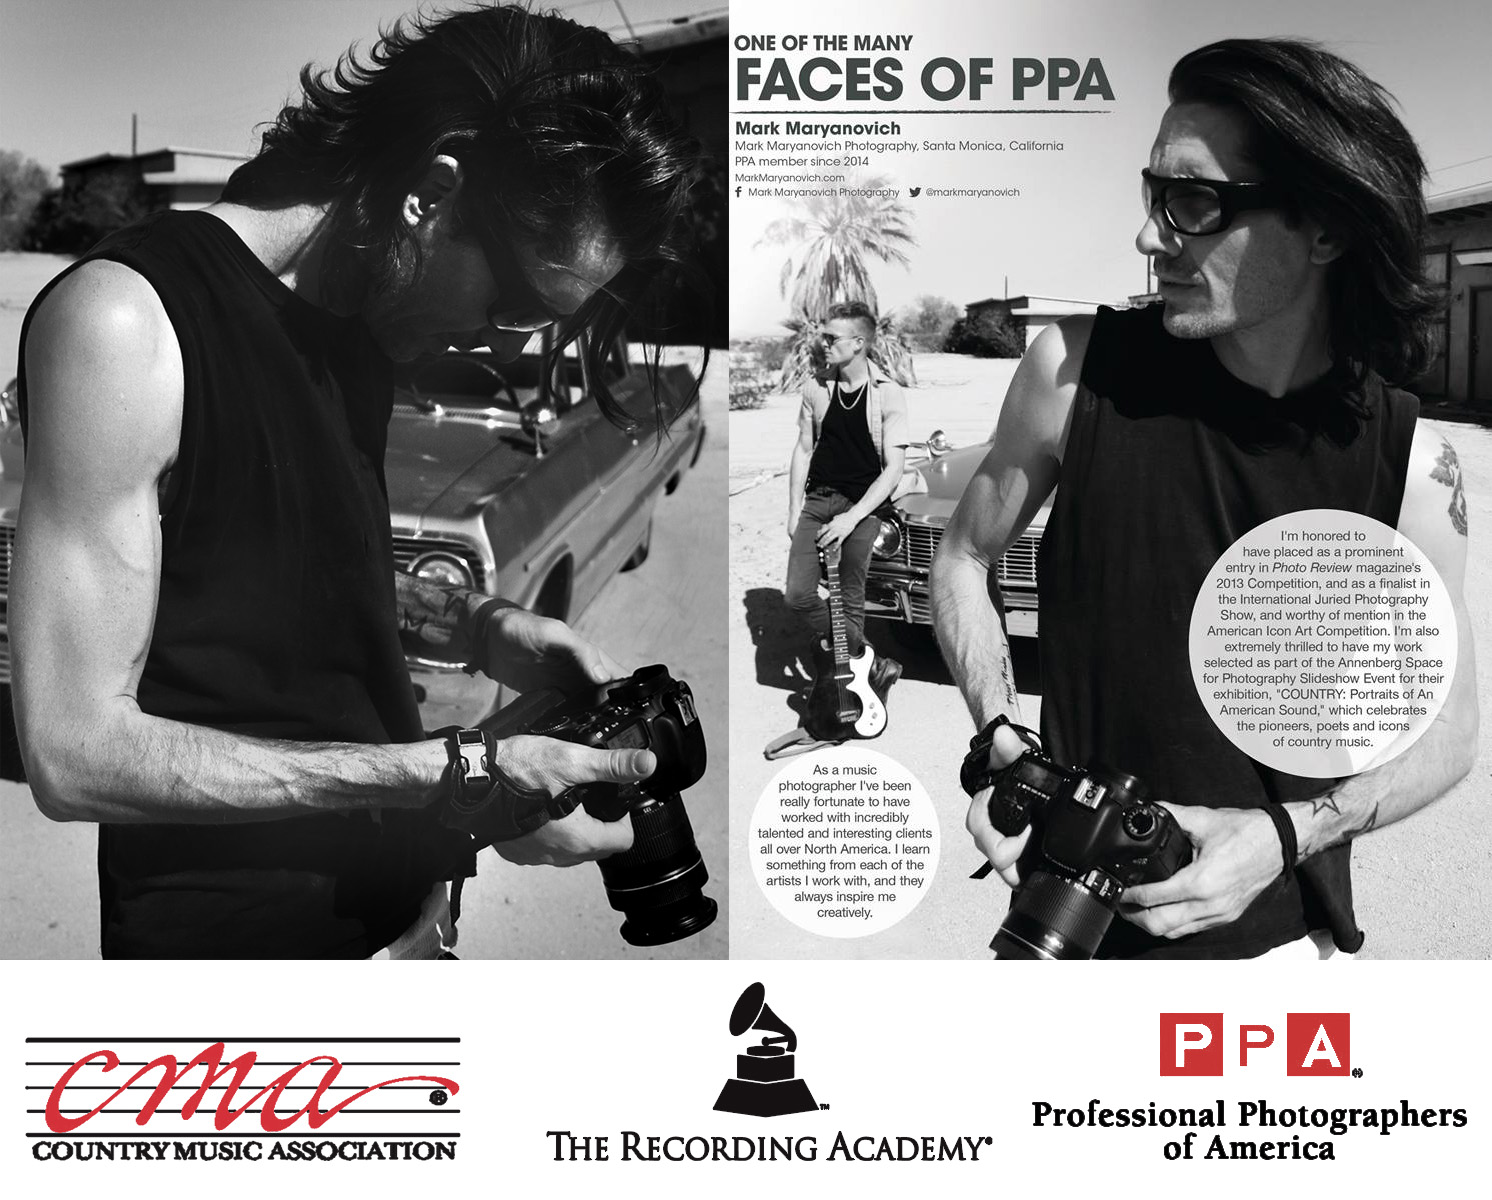 mark-maryanovich-associations-ppa-recording-academy-cma.jpg